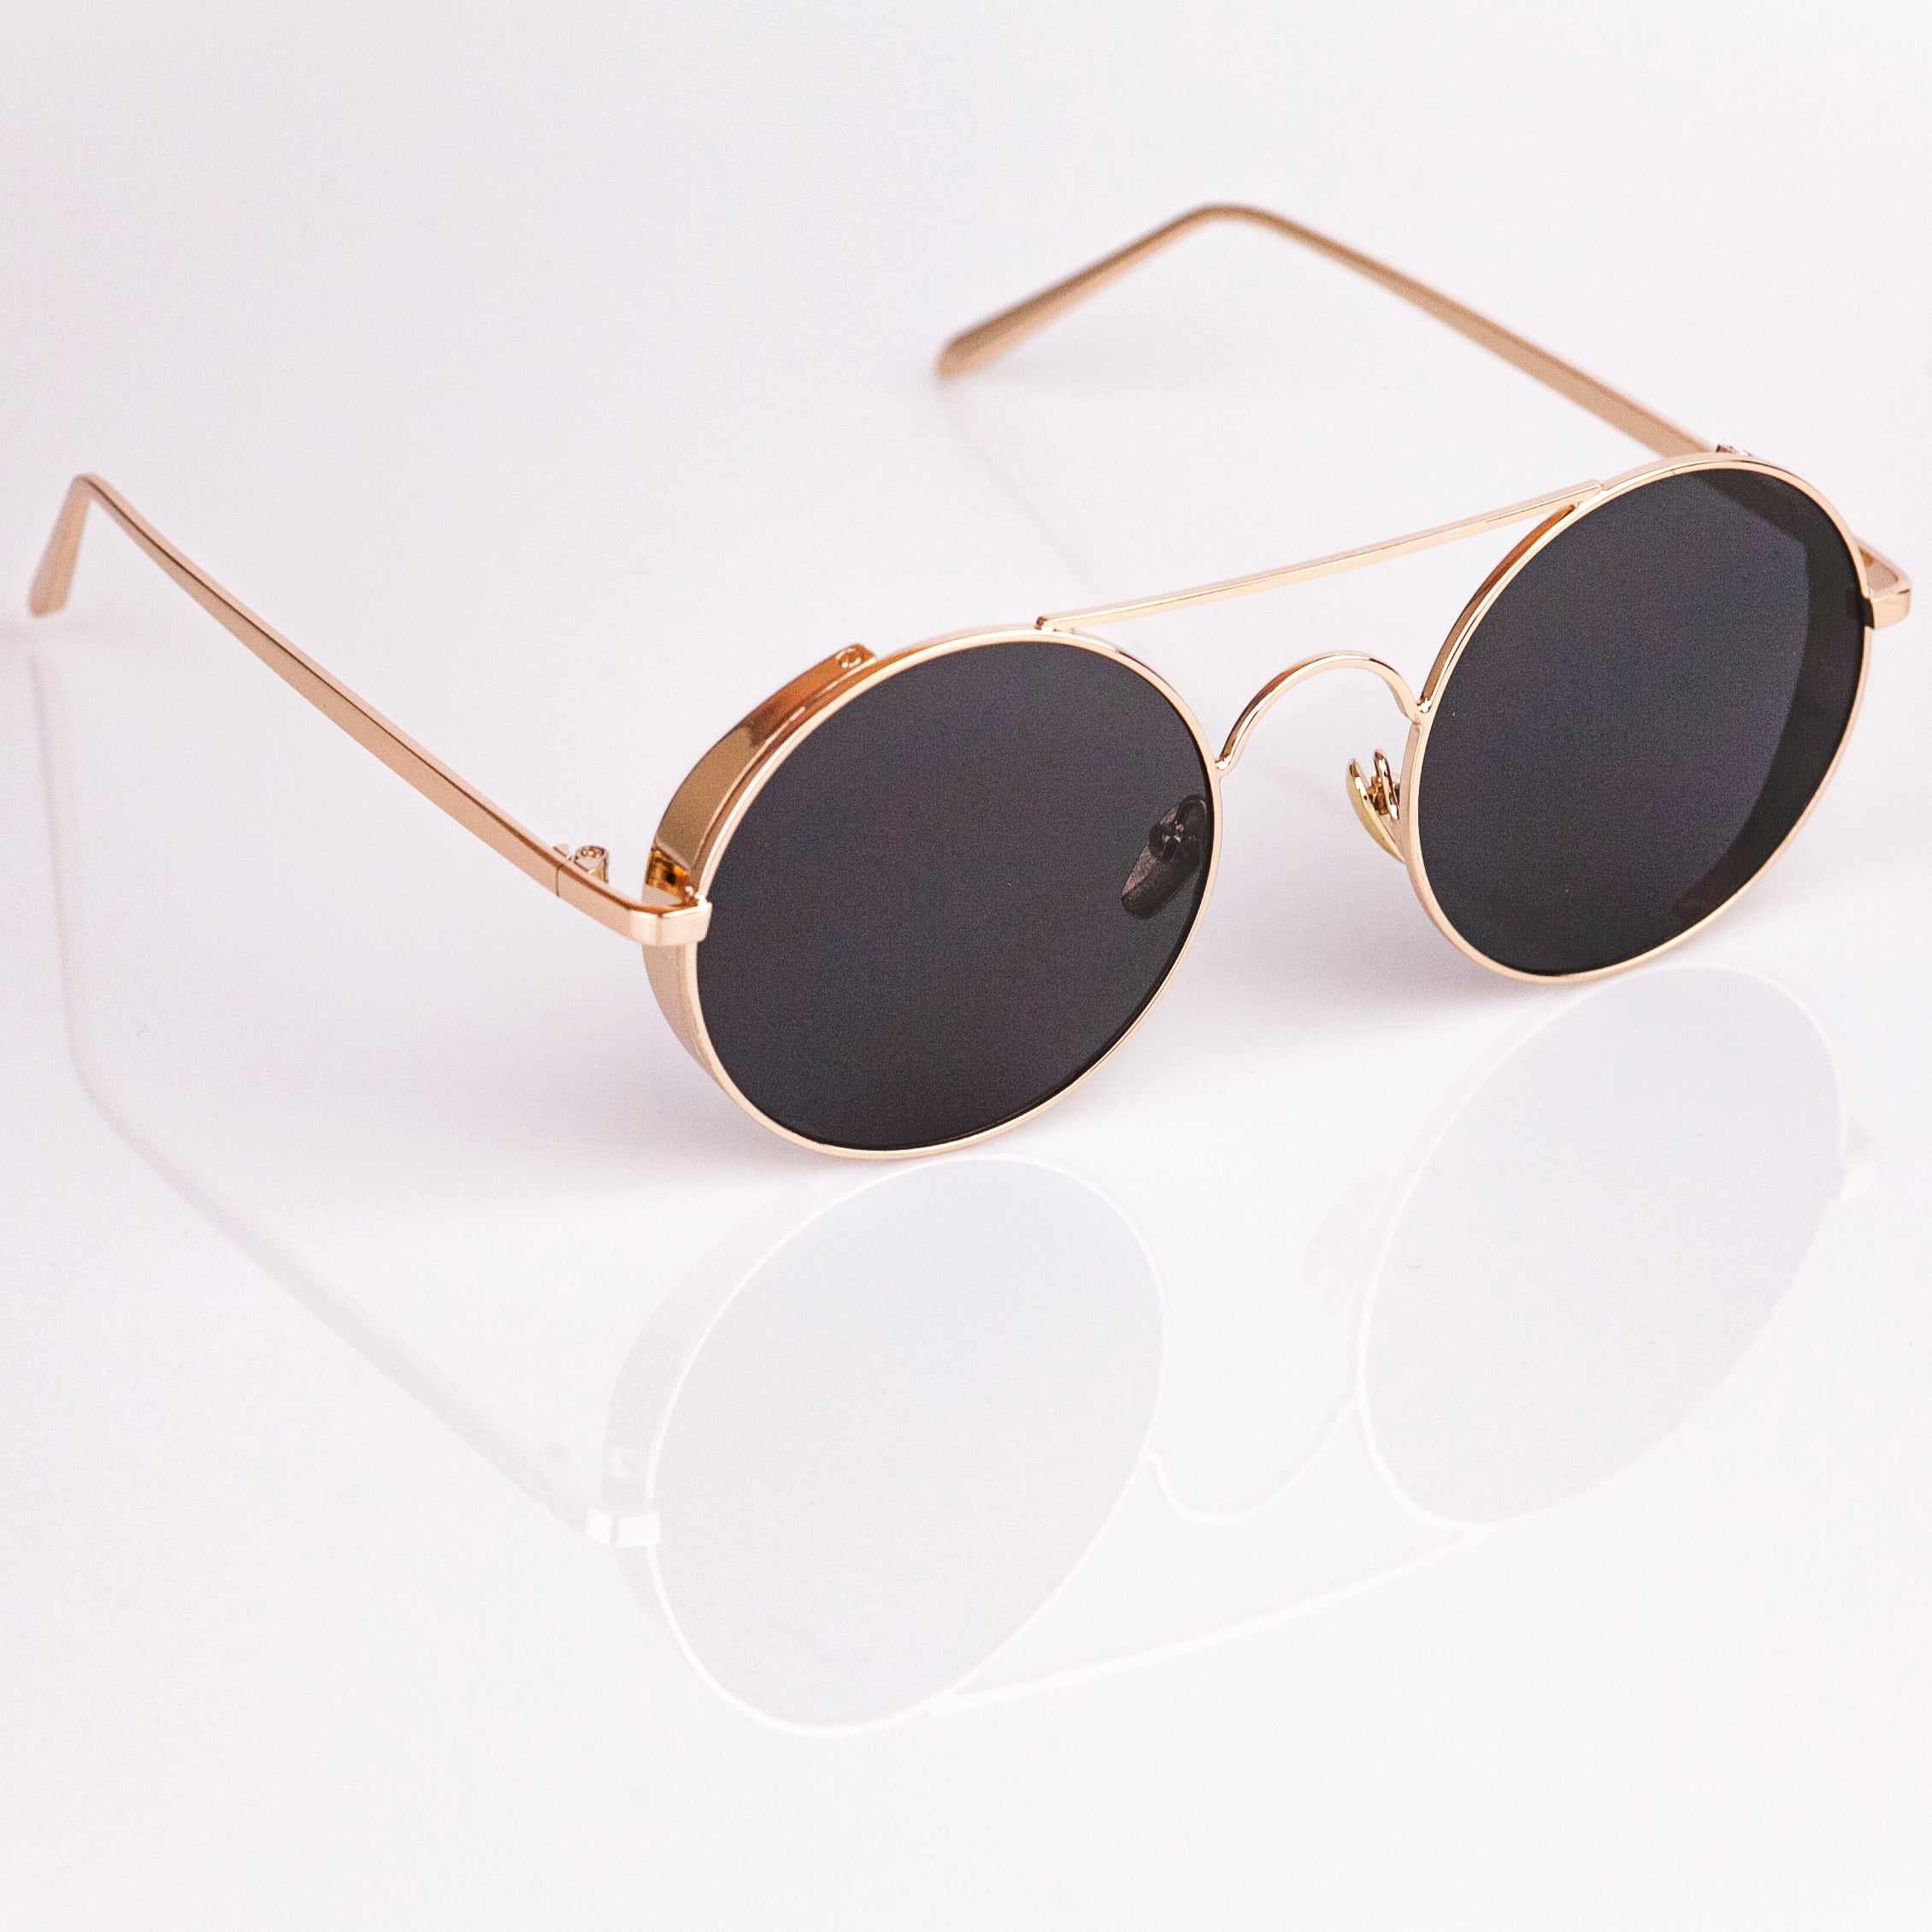 8021f5bbe Steampunk Sunglasses - Gold Frame - Black Lens - Hipster Sunglasses ...